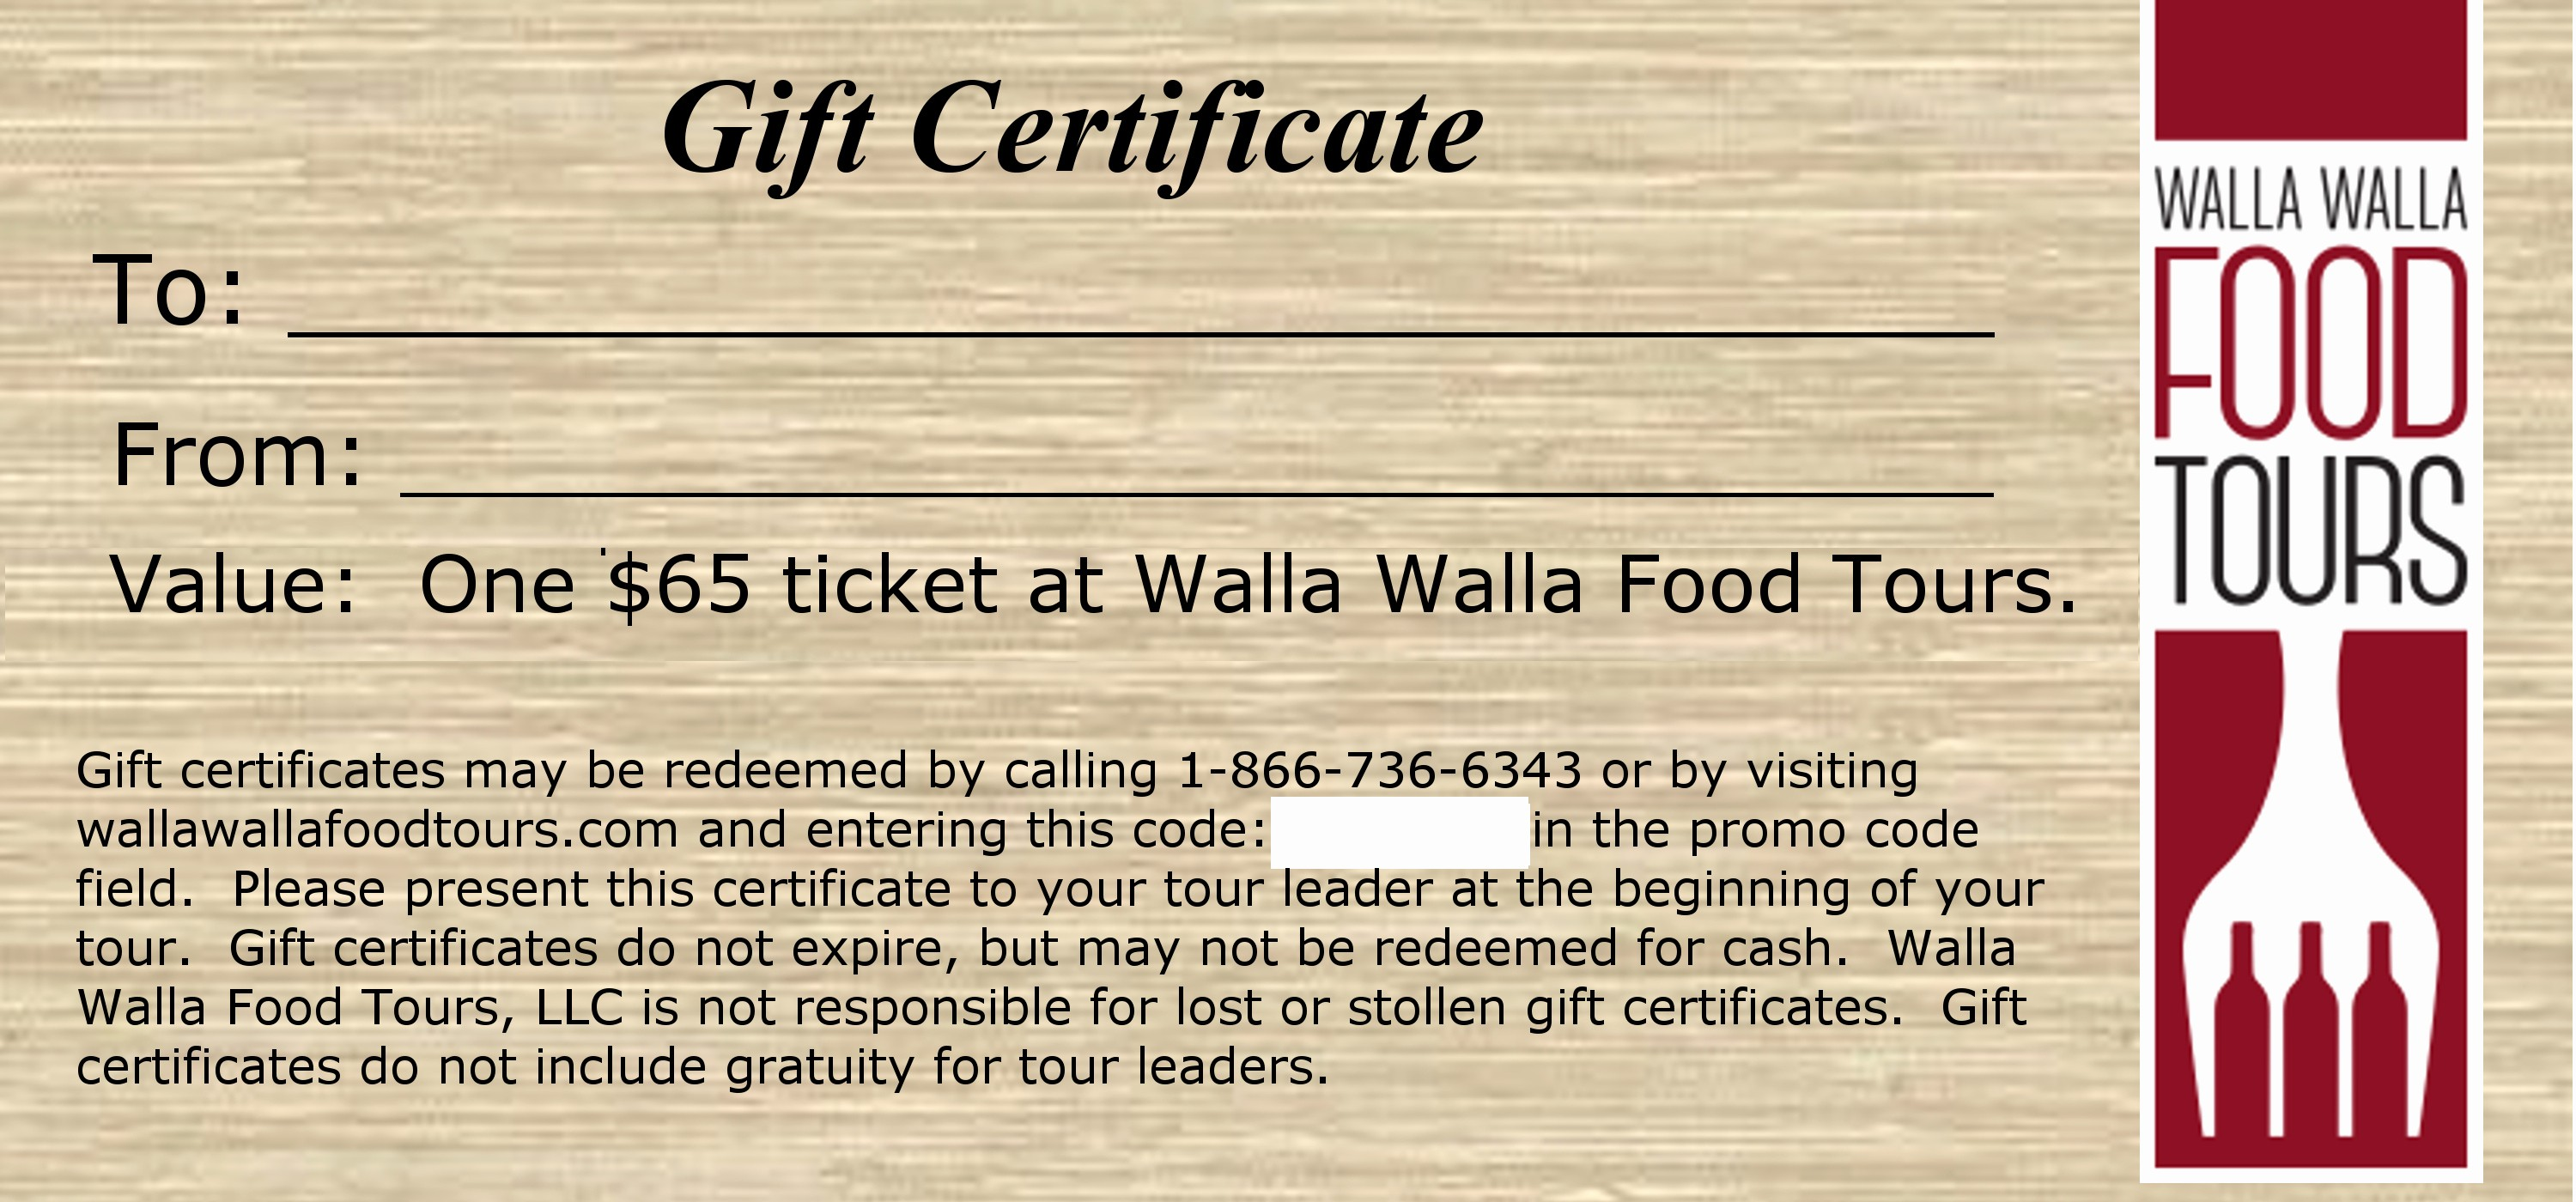 How to Make Gift Certificate Luxury Gift Certificates Walla Walla Food tours